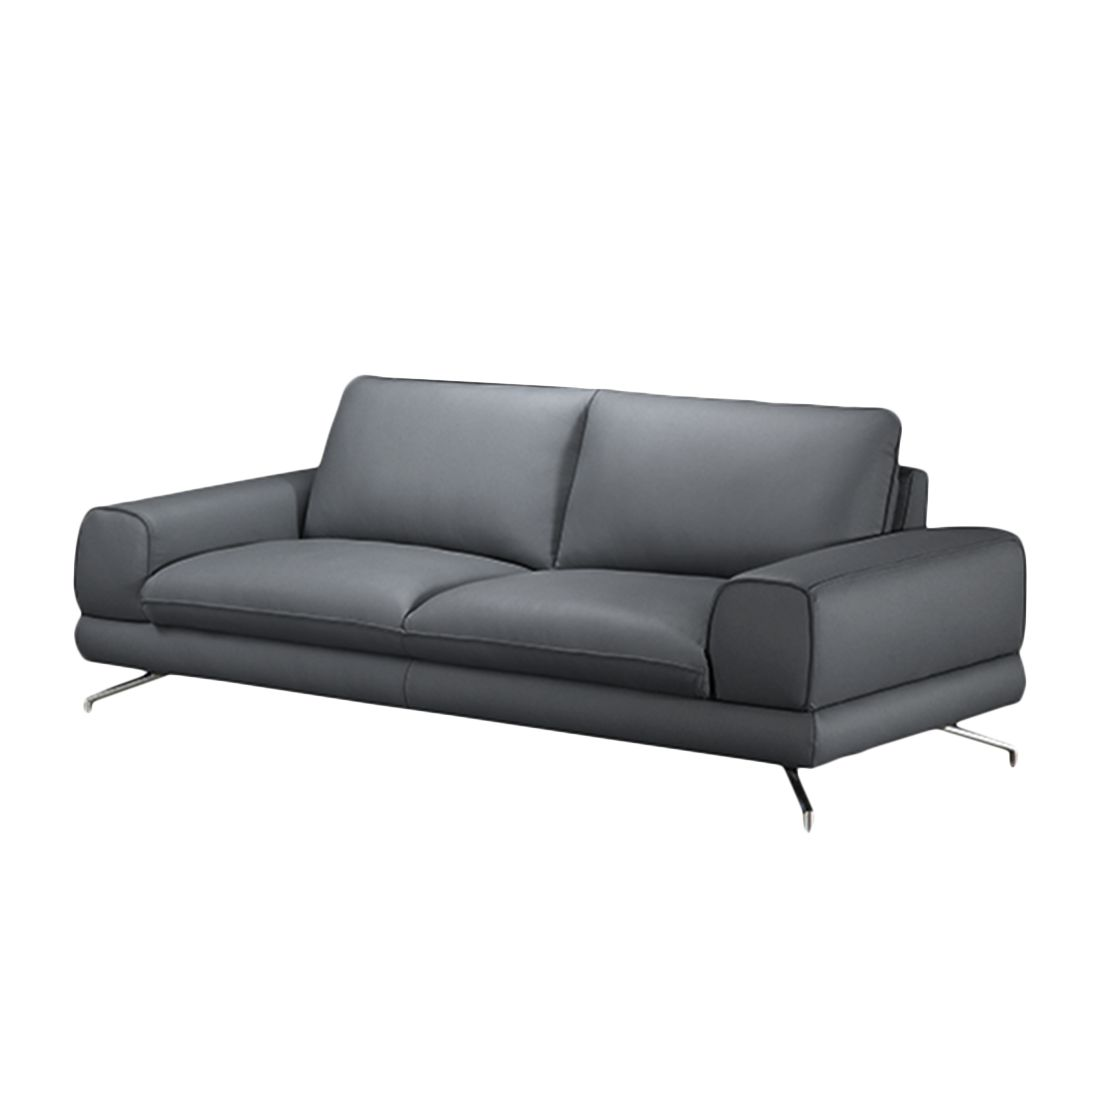 sofa lennard 2 5 sitzer kunstleder grau loftscape jetzt bestellen. Black Bedroom Furniture Sets. Home Design Ideas